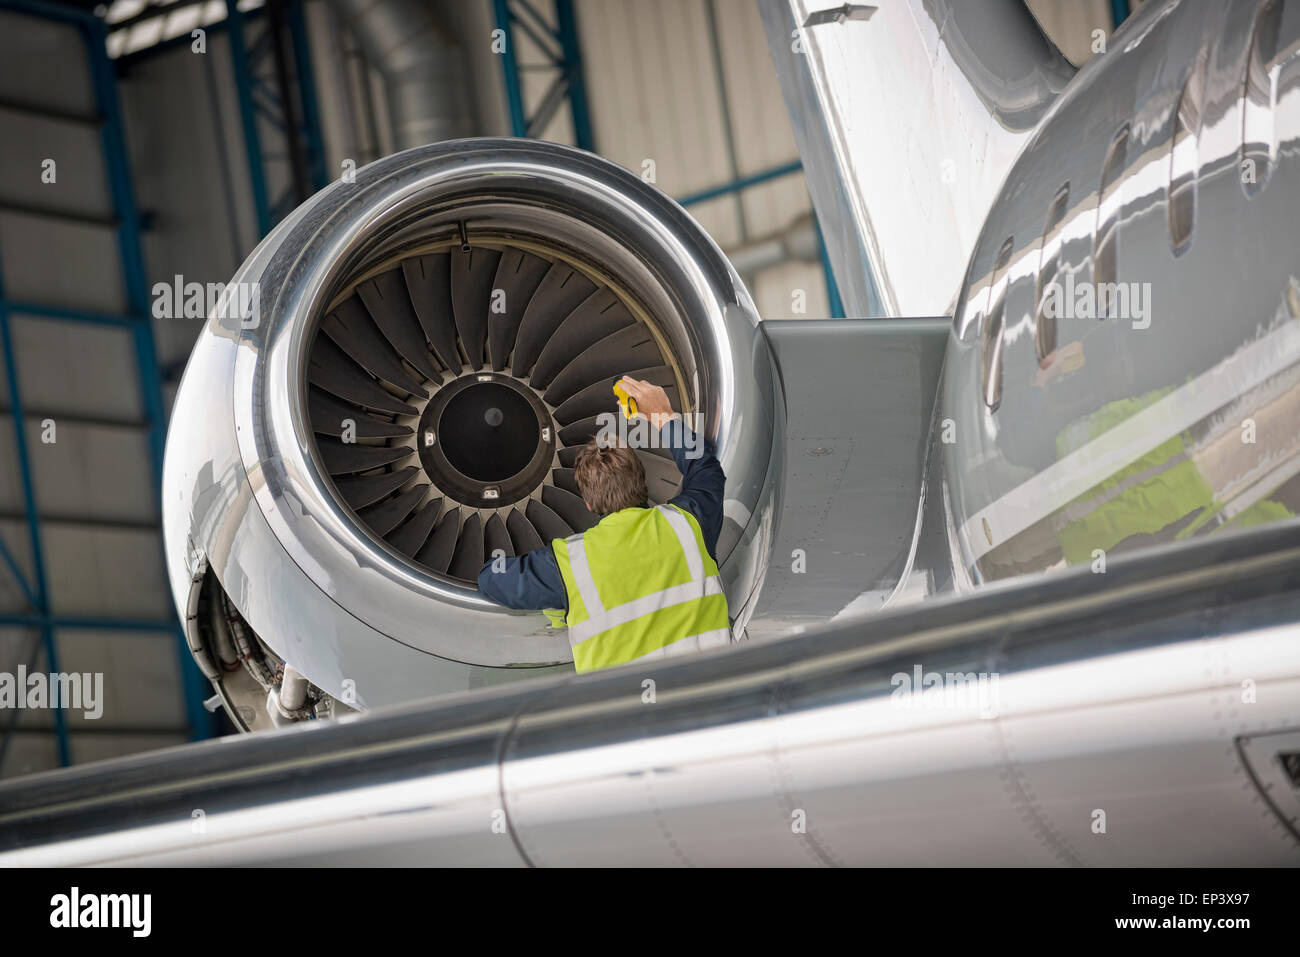 Aircraft mechanic inspecting airplane's jet engine - Stock Image